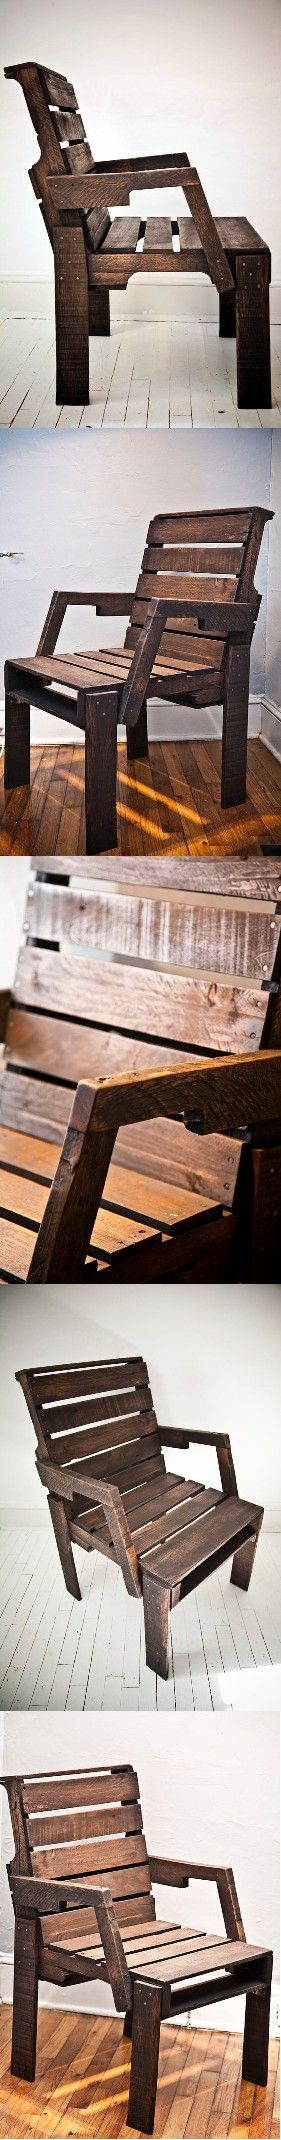 Pallet Captain's Chair #oldpalletsforcrafting